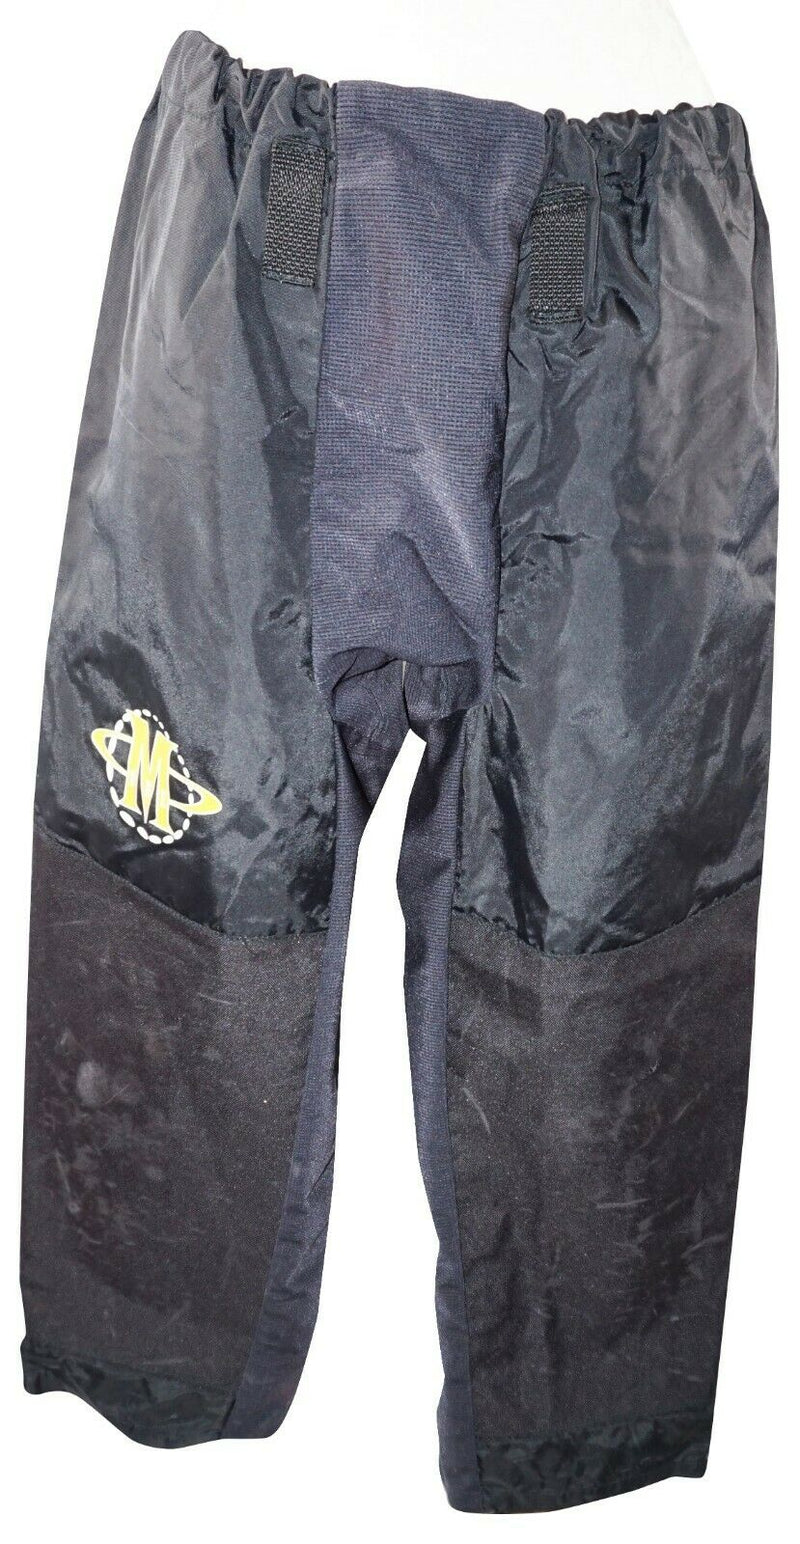 MISSION M-ONE ADULT SMALL 30-32 PANTS FOR INLINE OR ROLLER HOCKEY VINTAGE USED